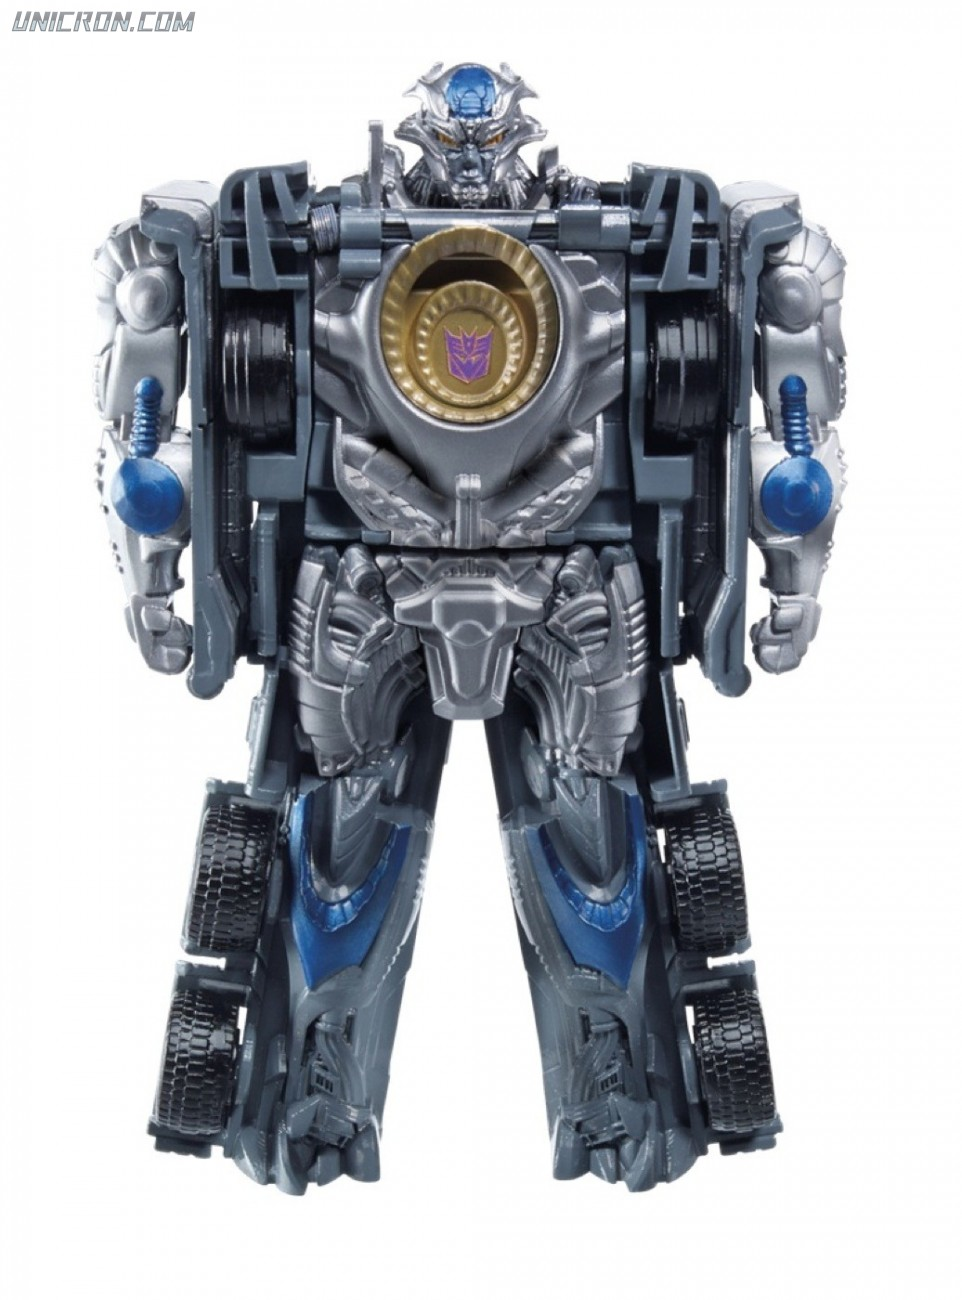 Transformers 4 Age of Extinction Galvatron (one-step changer) toy